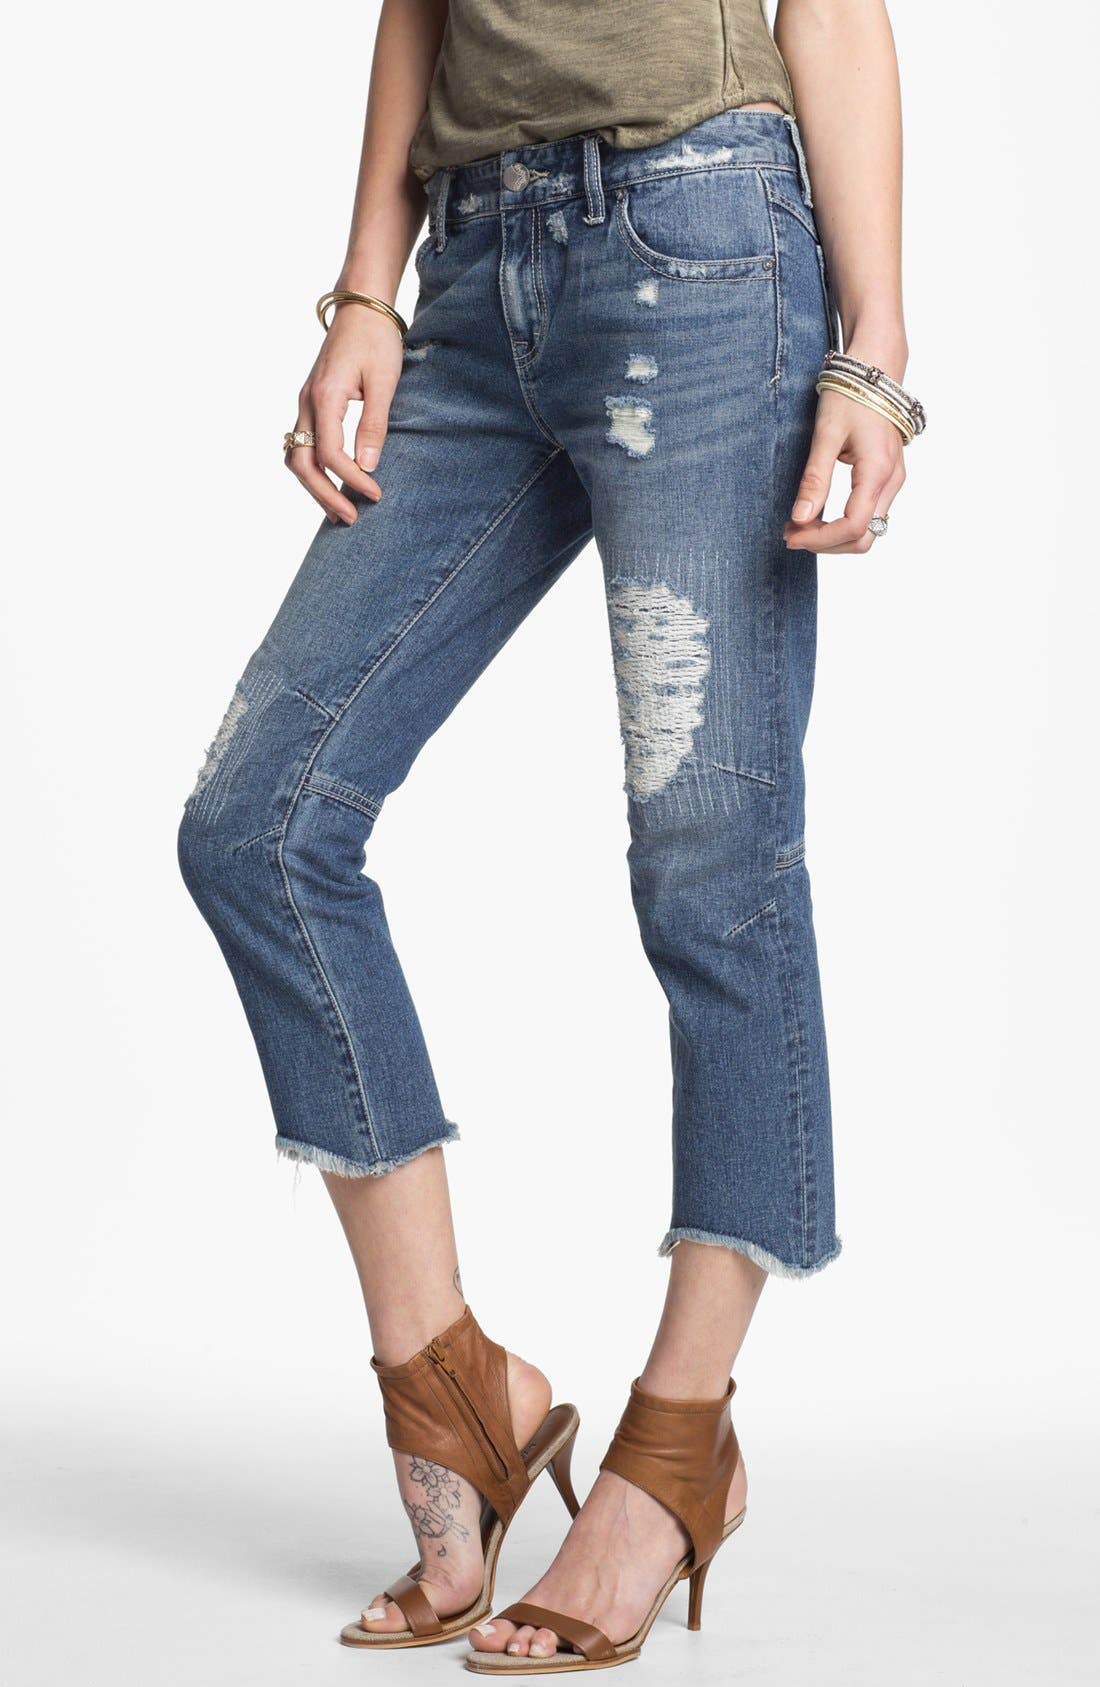 Alternate Image 1 Selected - Free People Cutoff Crop Jeans (True Blue)